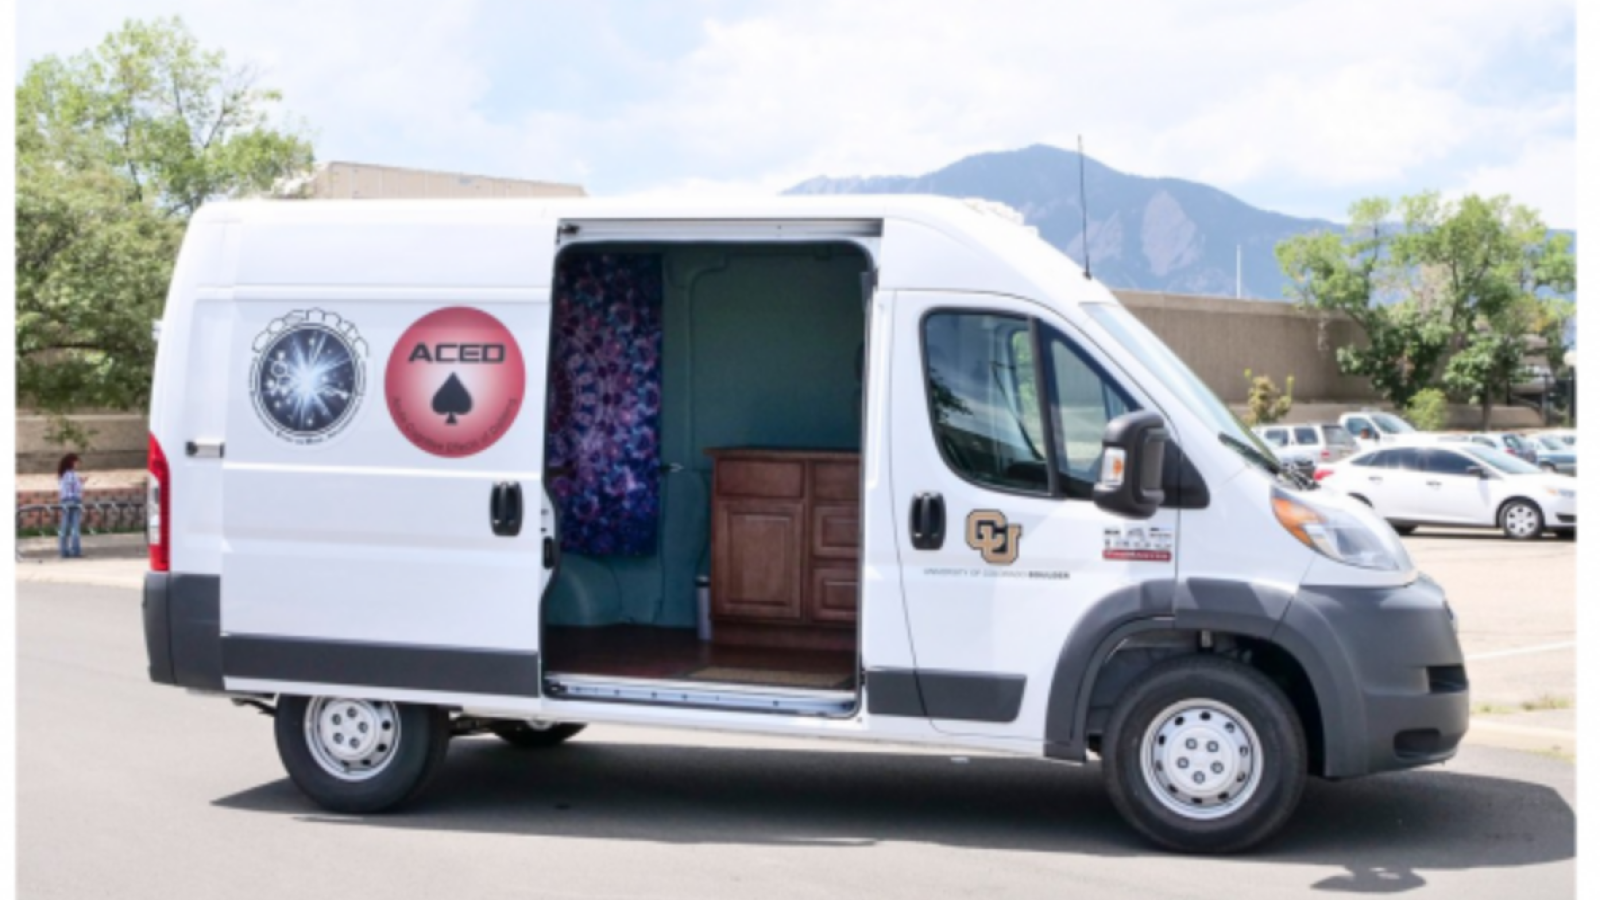 mobile pharmacology lab parked with door open